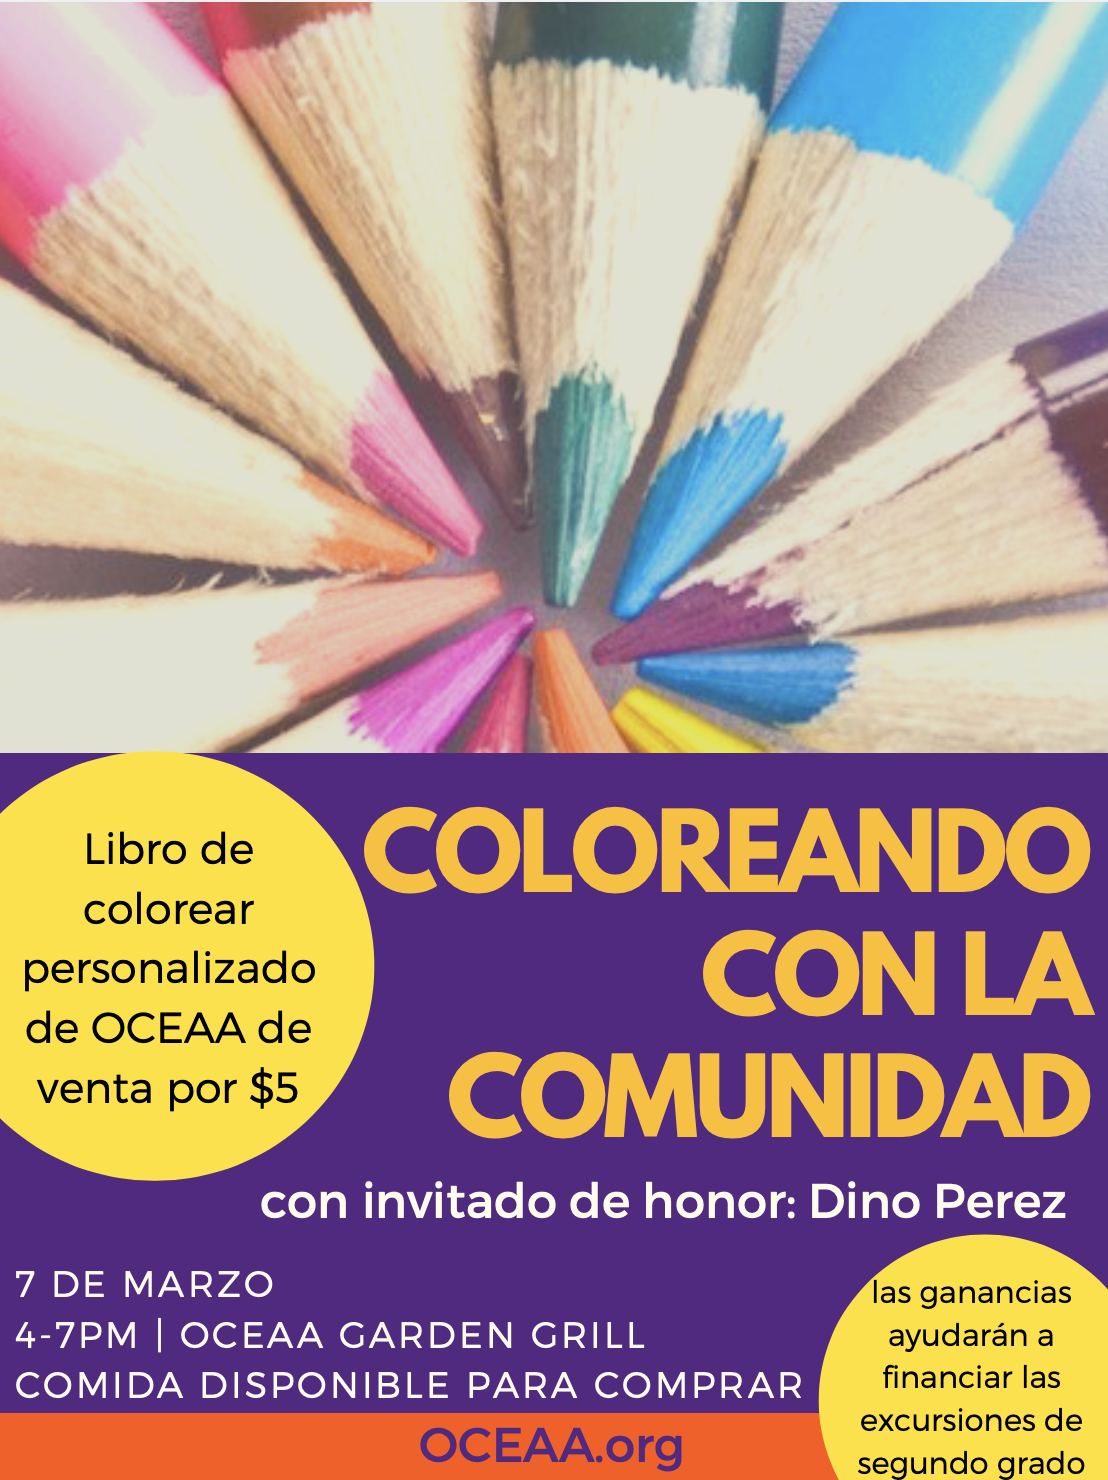 Coloring with the Community with Dino Perez - oceaa.org